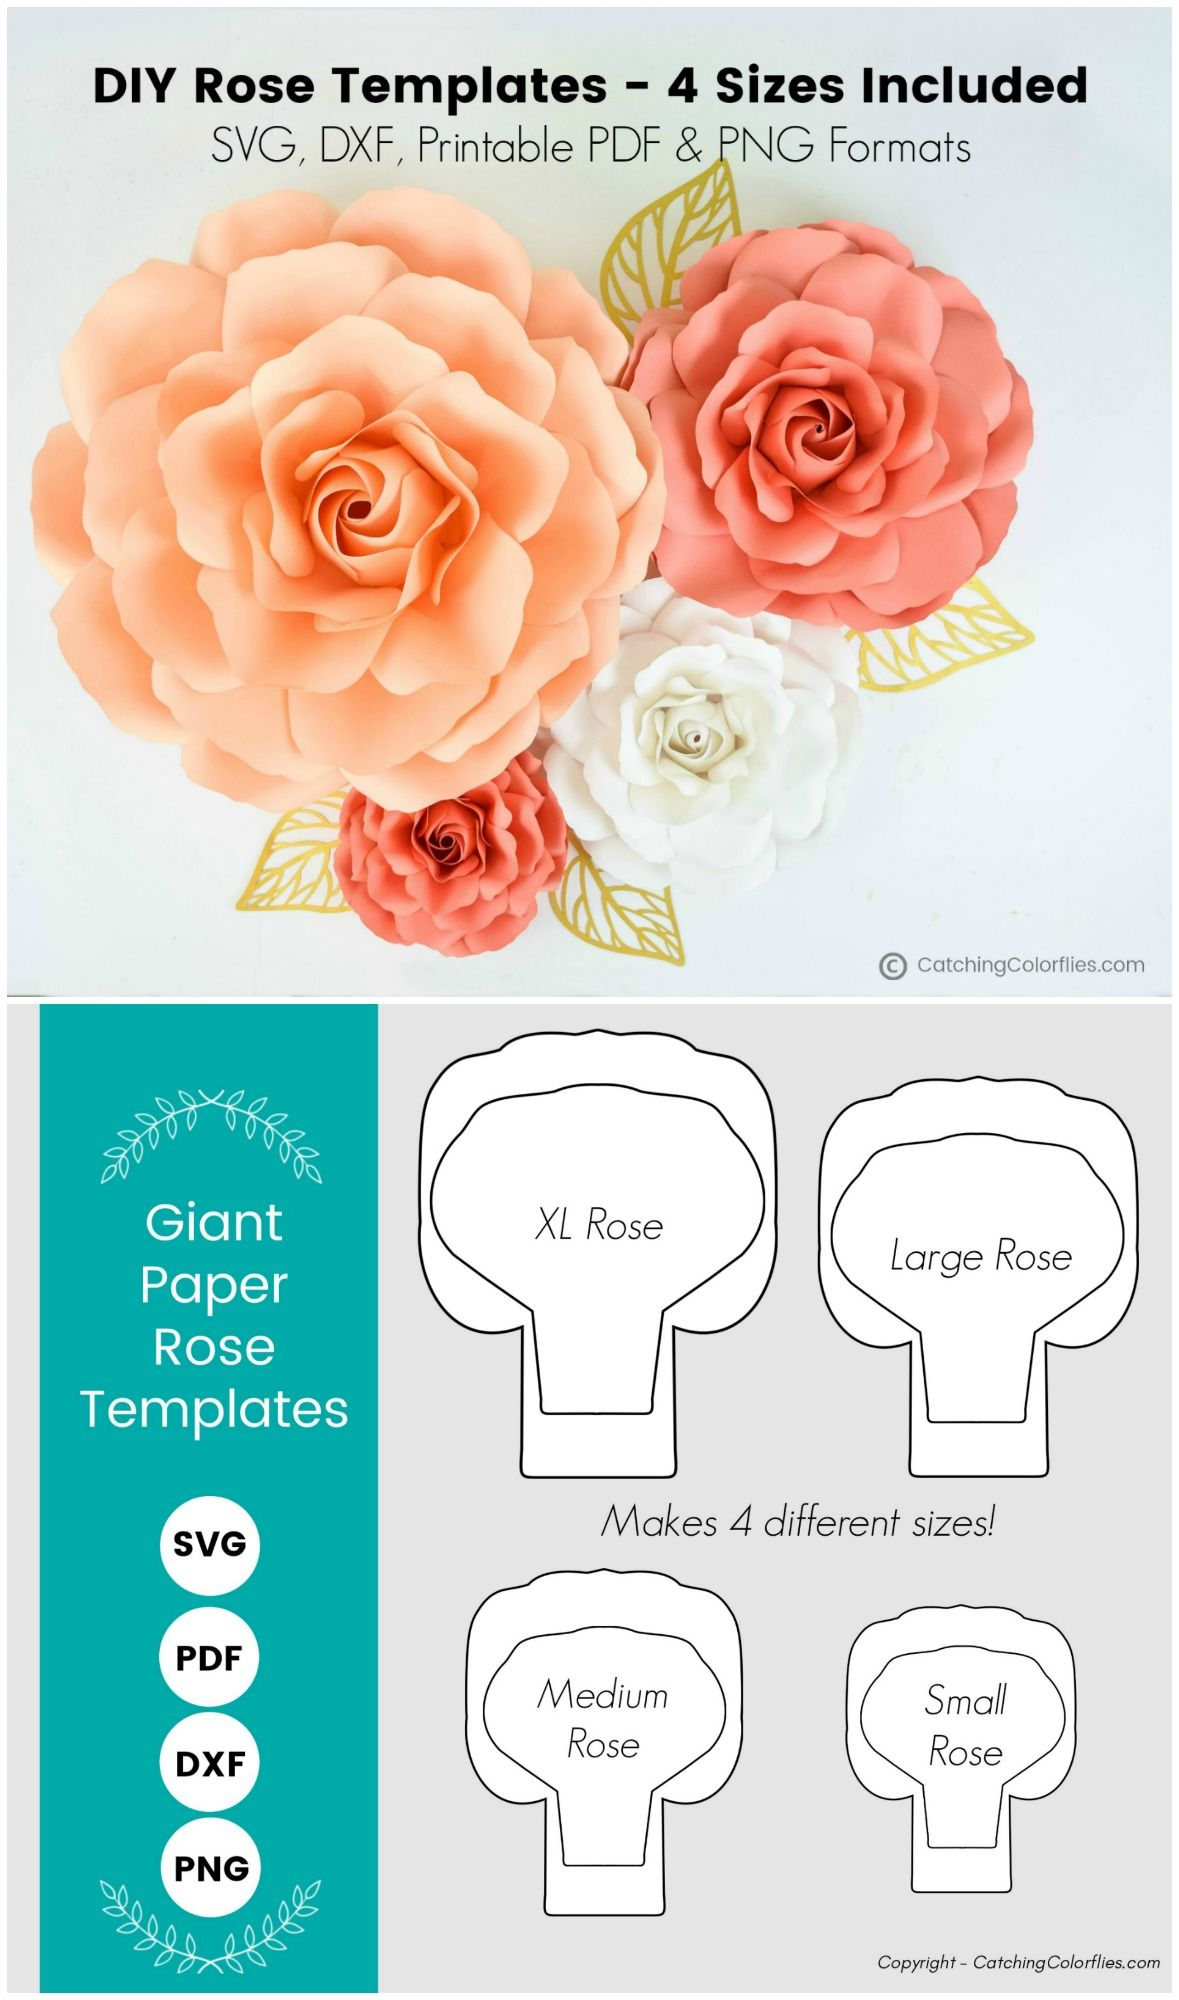 Giant Paper Rose Tutorial and Flower Templates - SVG, DXF, and Printable PDF #giantpaperflowers